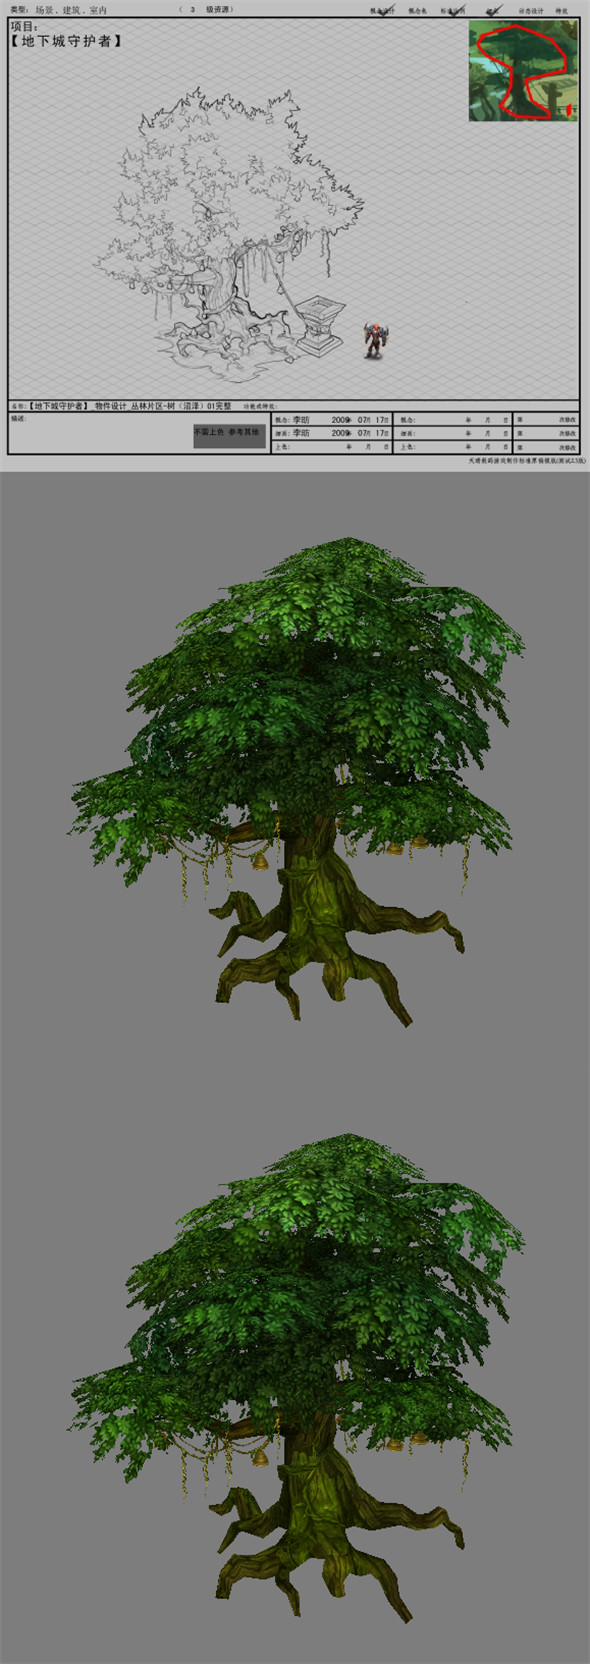 Jungle Area Arena game model tree swamp-02 01 - 3DOcean Item for Sale